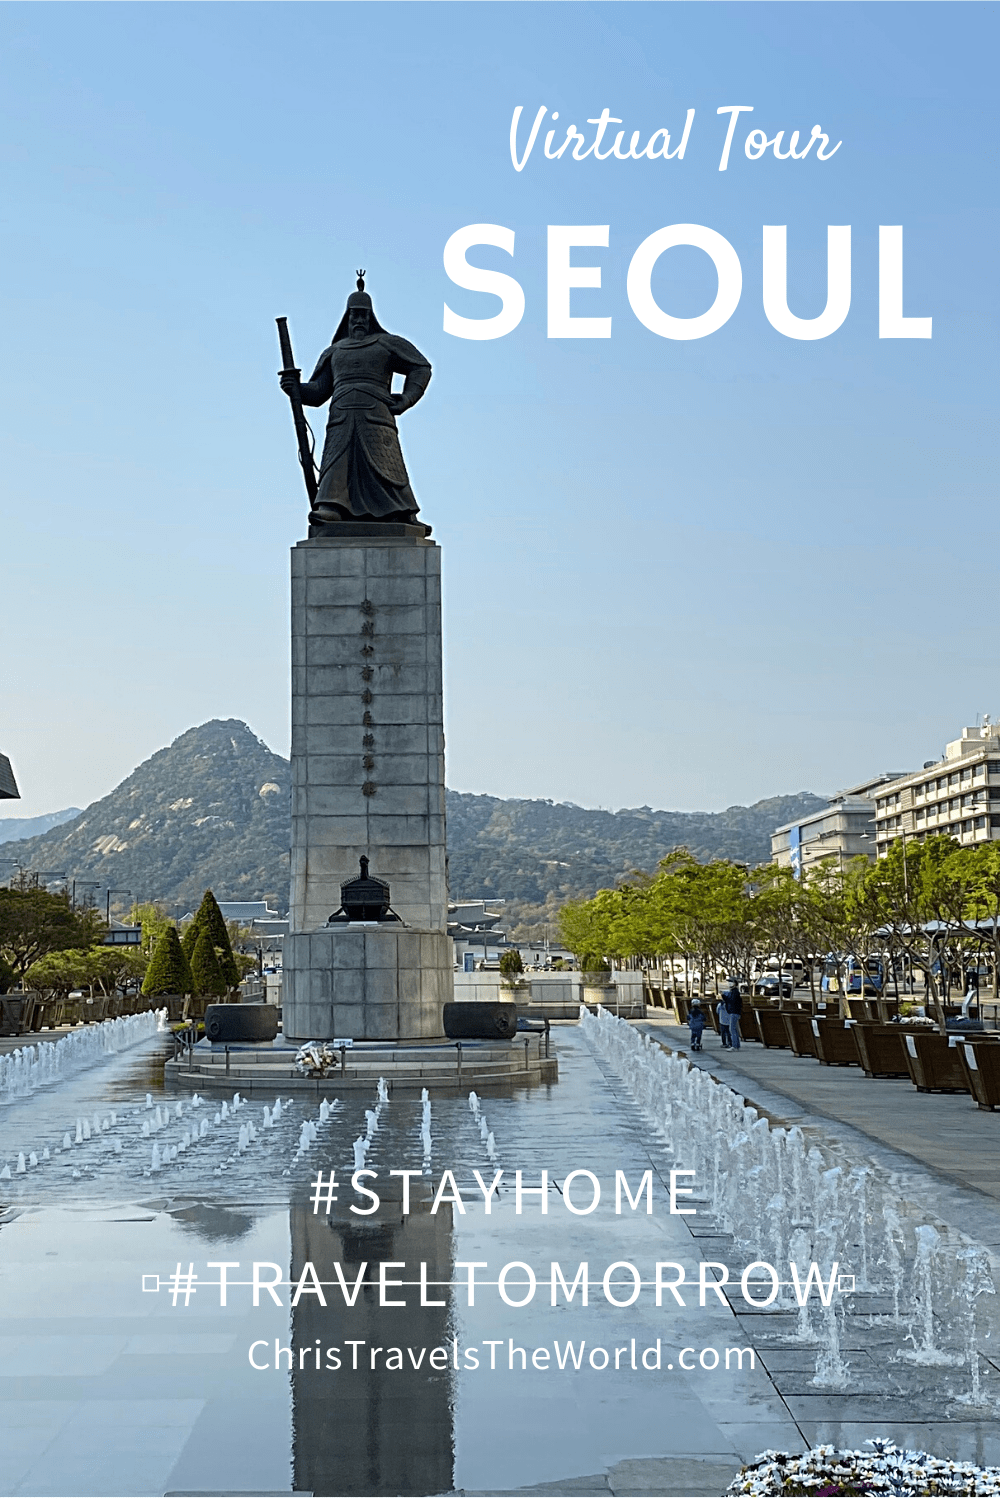 Virtual tour of Seoul